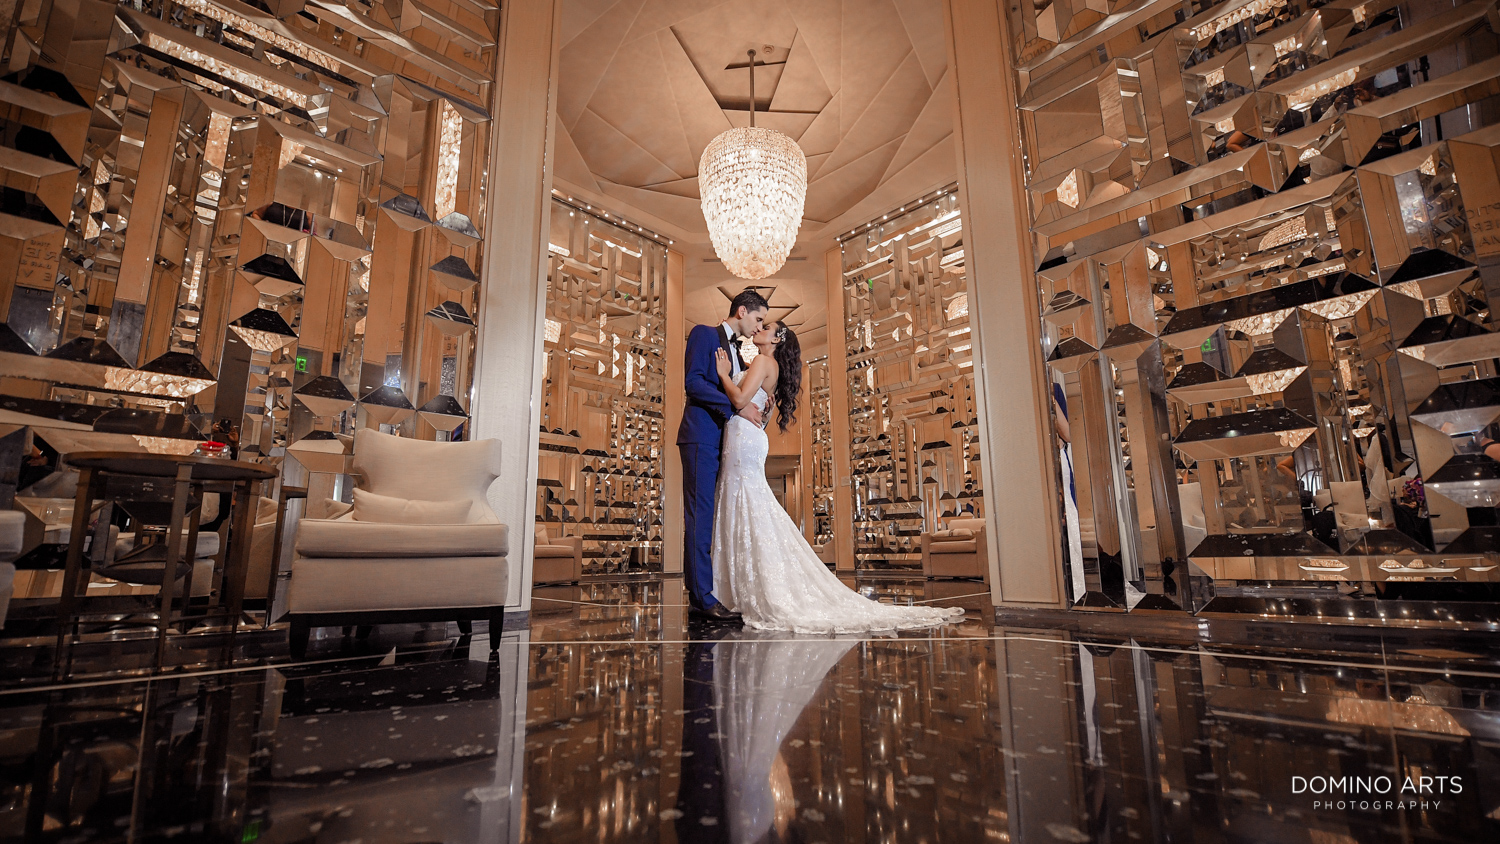 Fashion wedding pictures of bride and groom at The St. Regis Bal Harbour